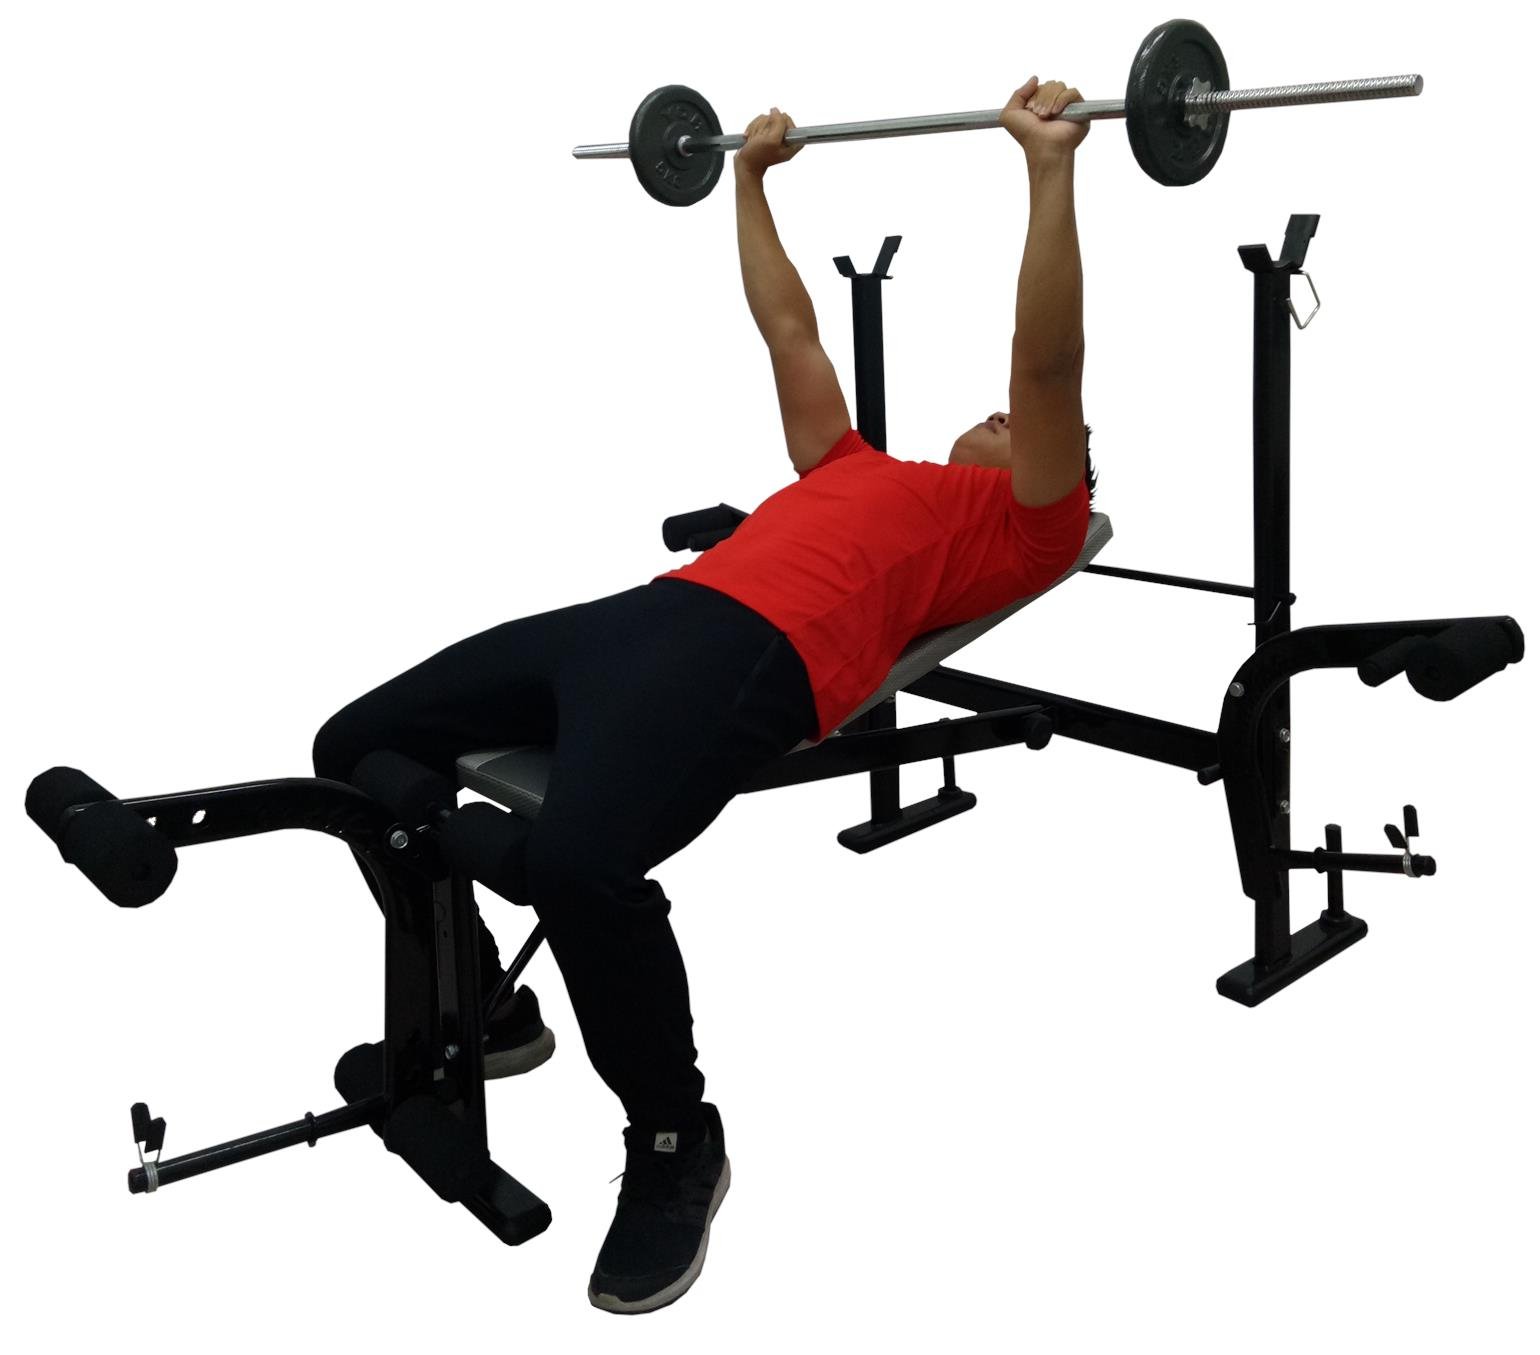 gym bench press chair swivel mount barbell workout pre end 10 7 2017 12 15 am